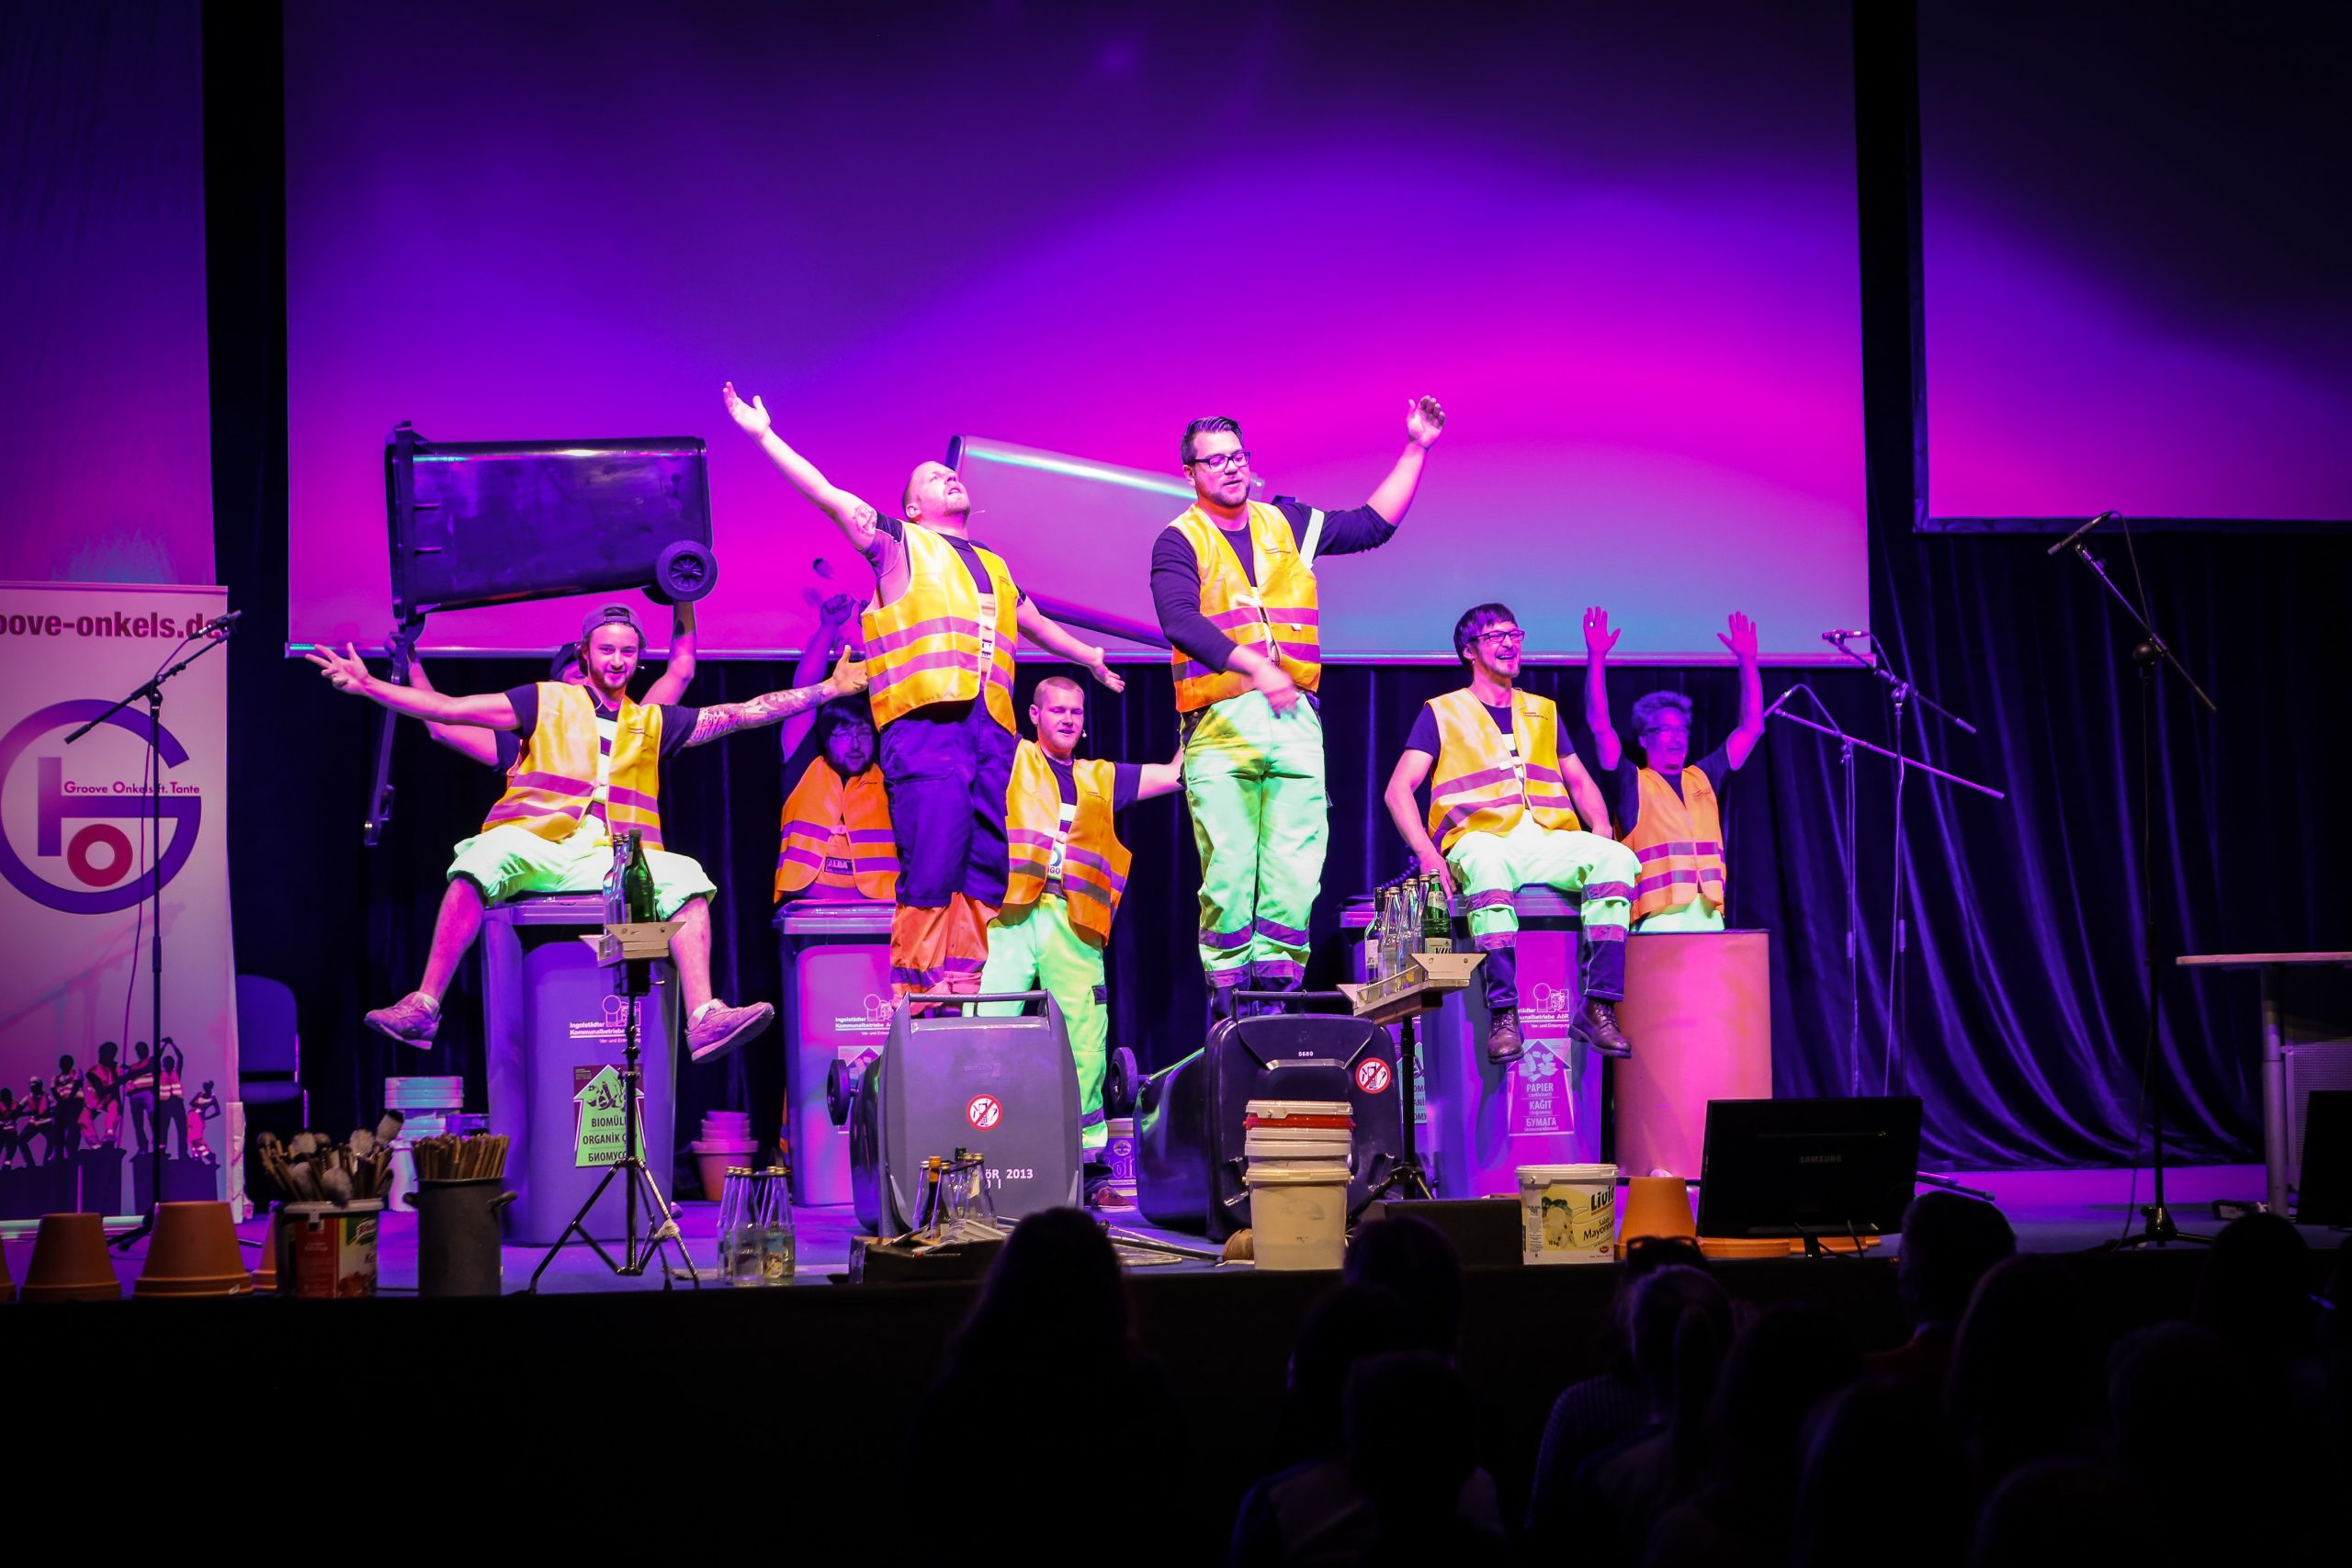 Bahrain EDB kicks off 12th Spring of Culture with performances by Groove Onkels